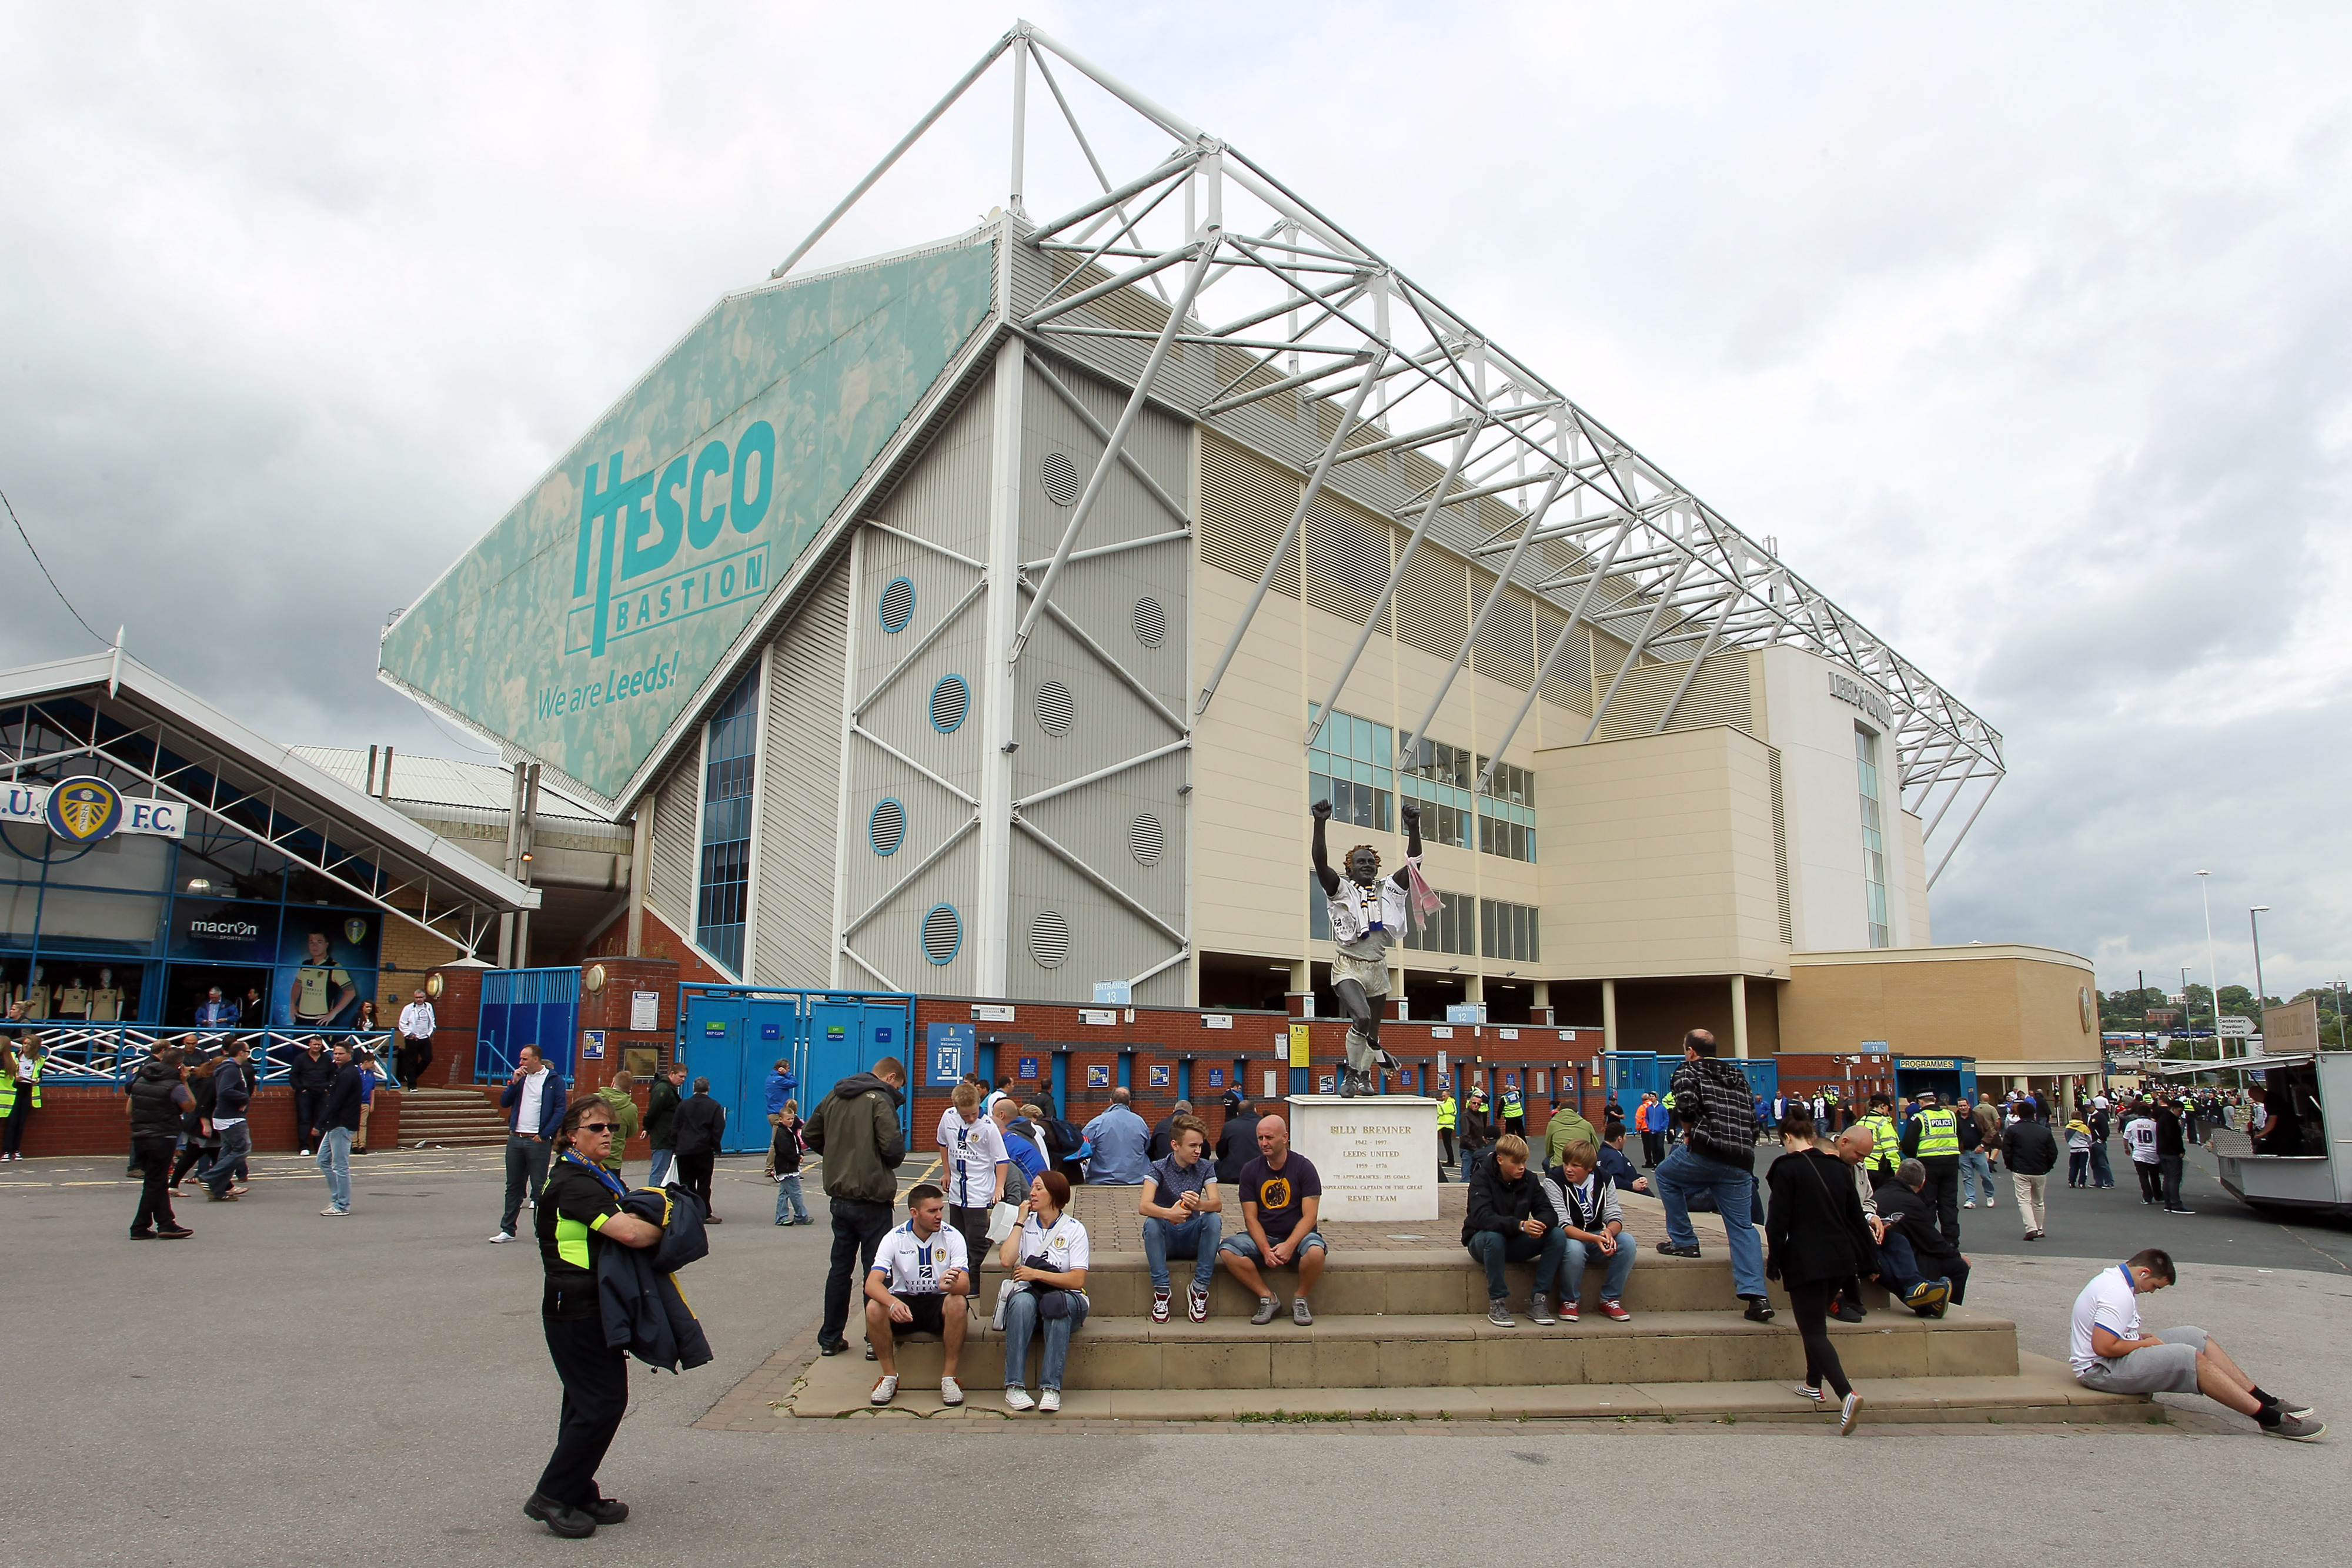 Despite defeat and a small crowd, Elland Road is a happy place to be right now.